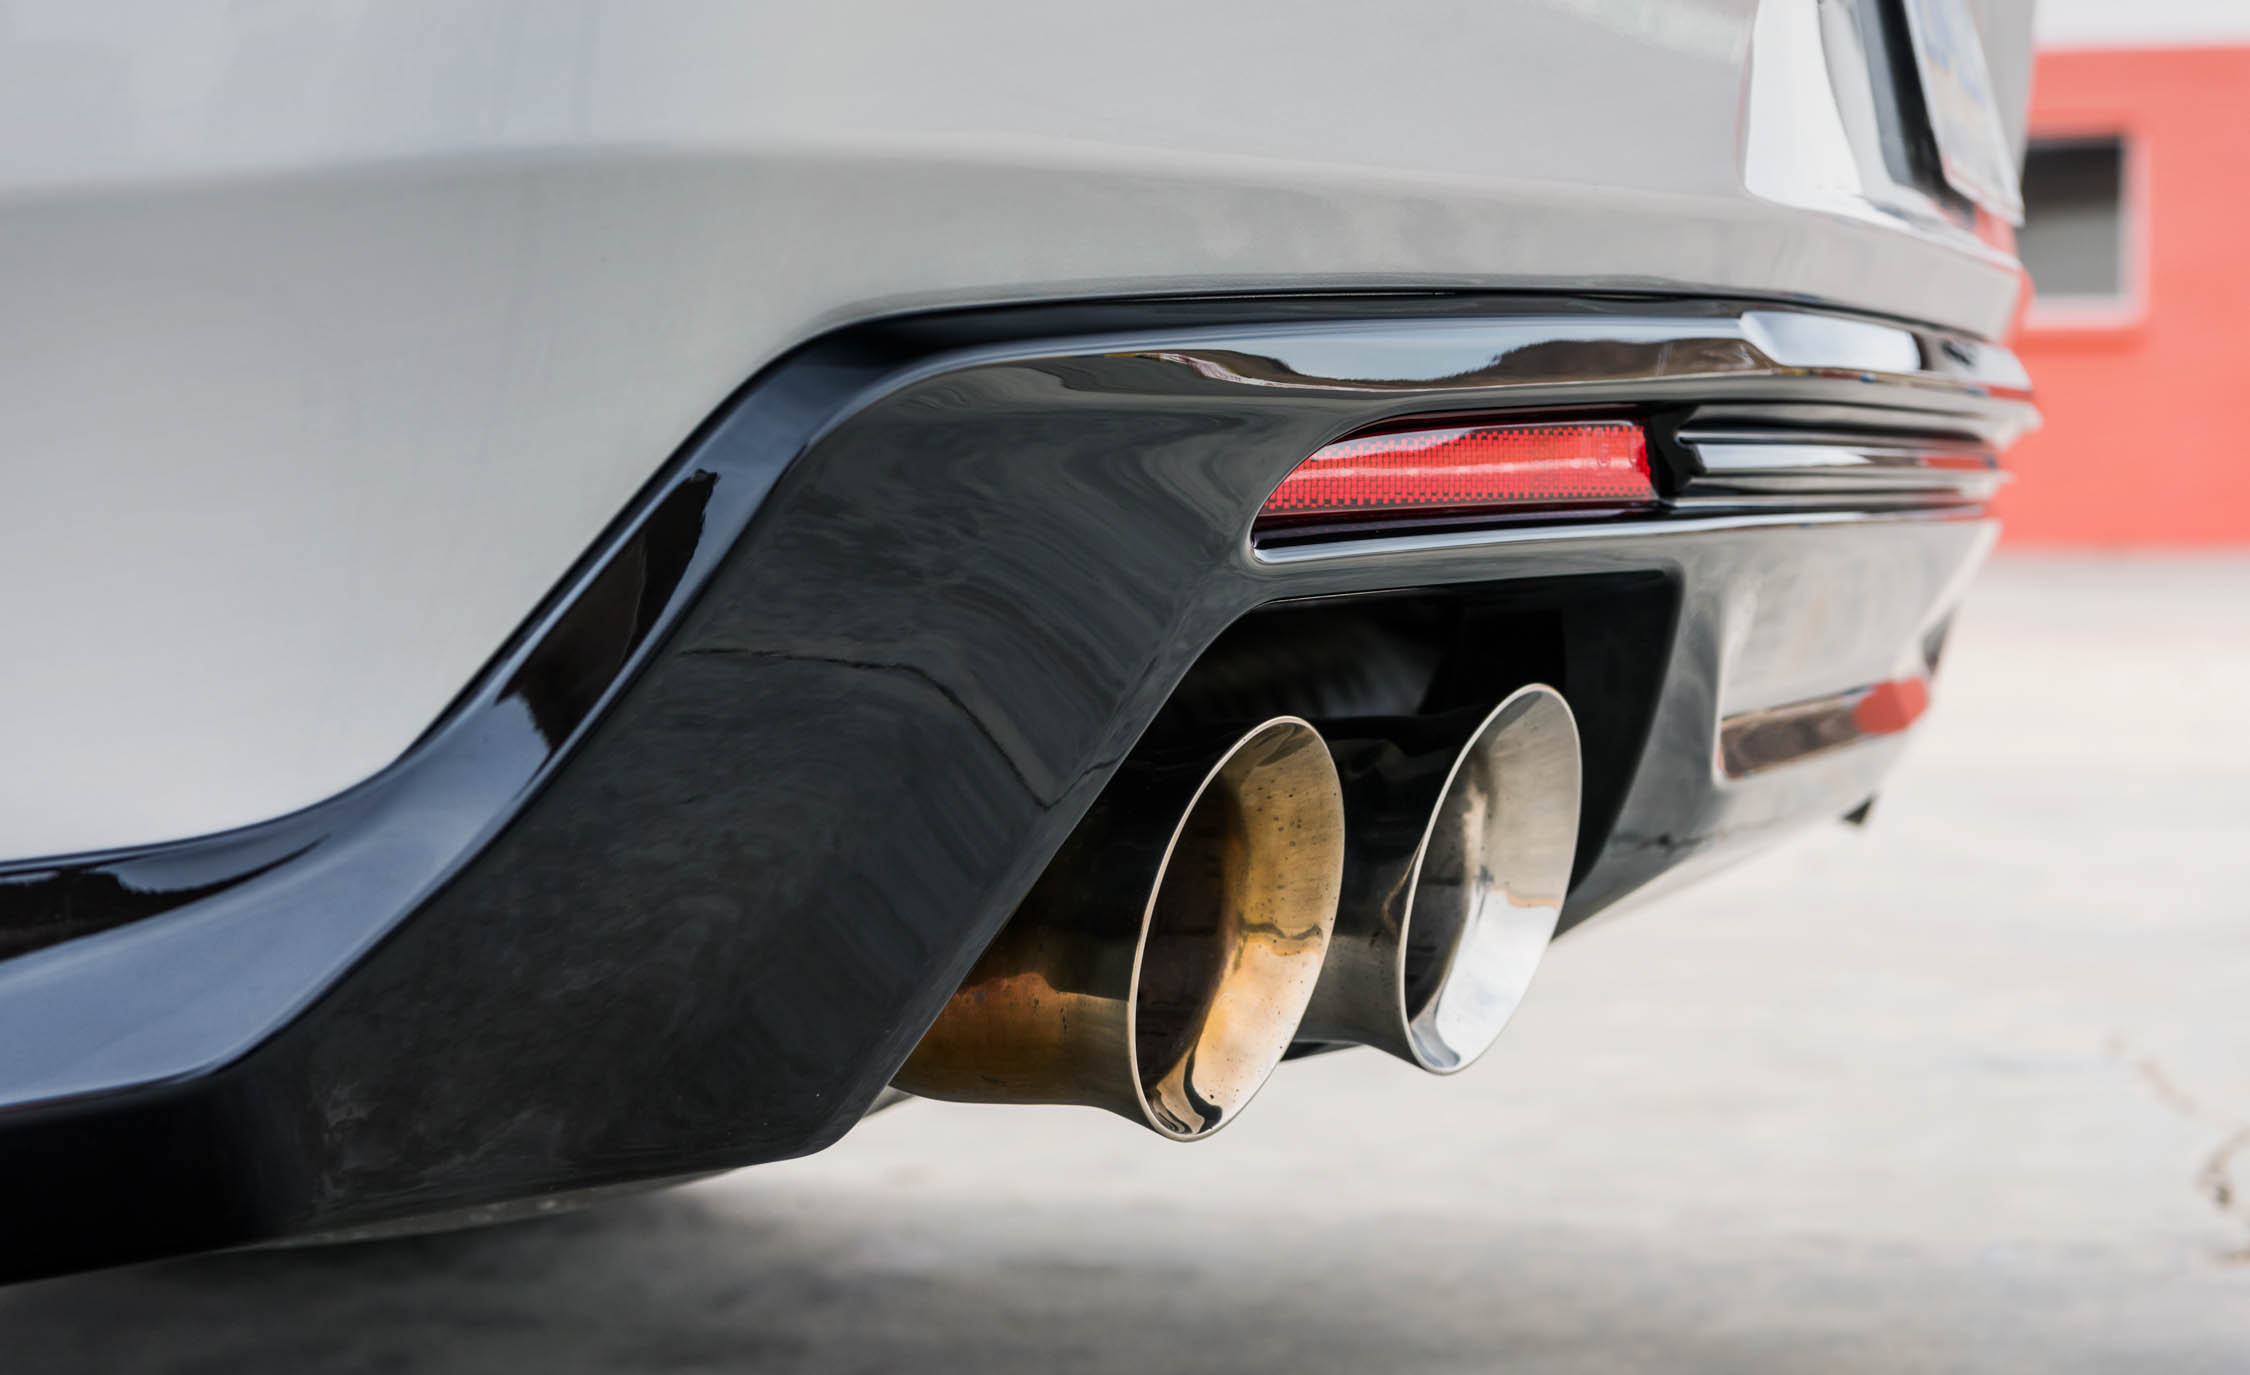 2017 Chevrolet Camaro ZL1 White Exterior View Exhaust Muffler (Photo 45 of 62)